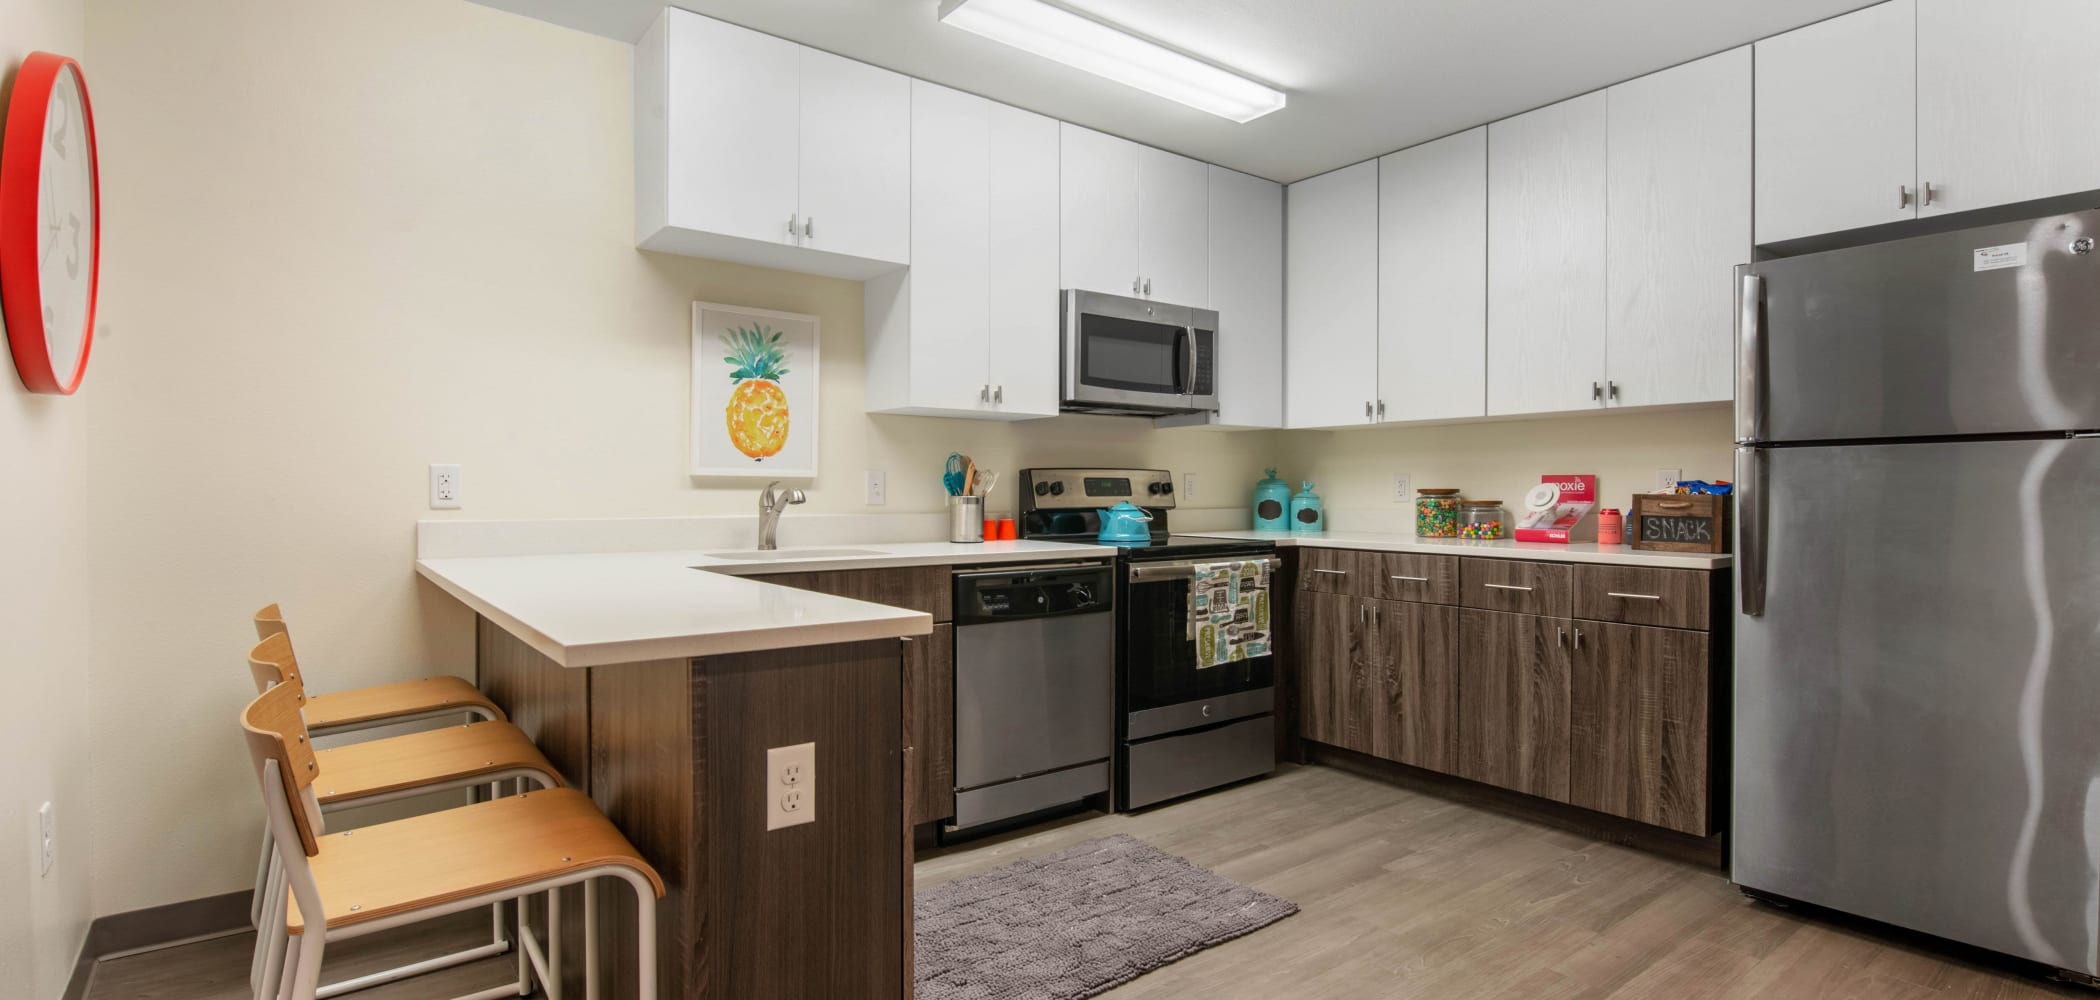 Kitchen with stainless steel appliances at Social 28 in Gainesville, Florida